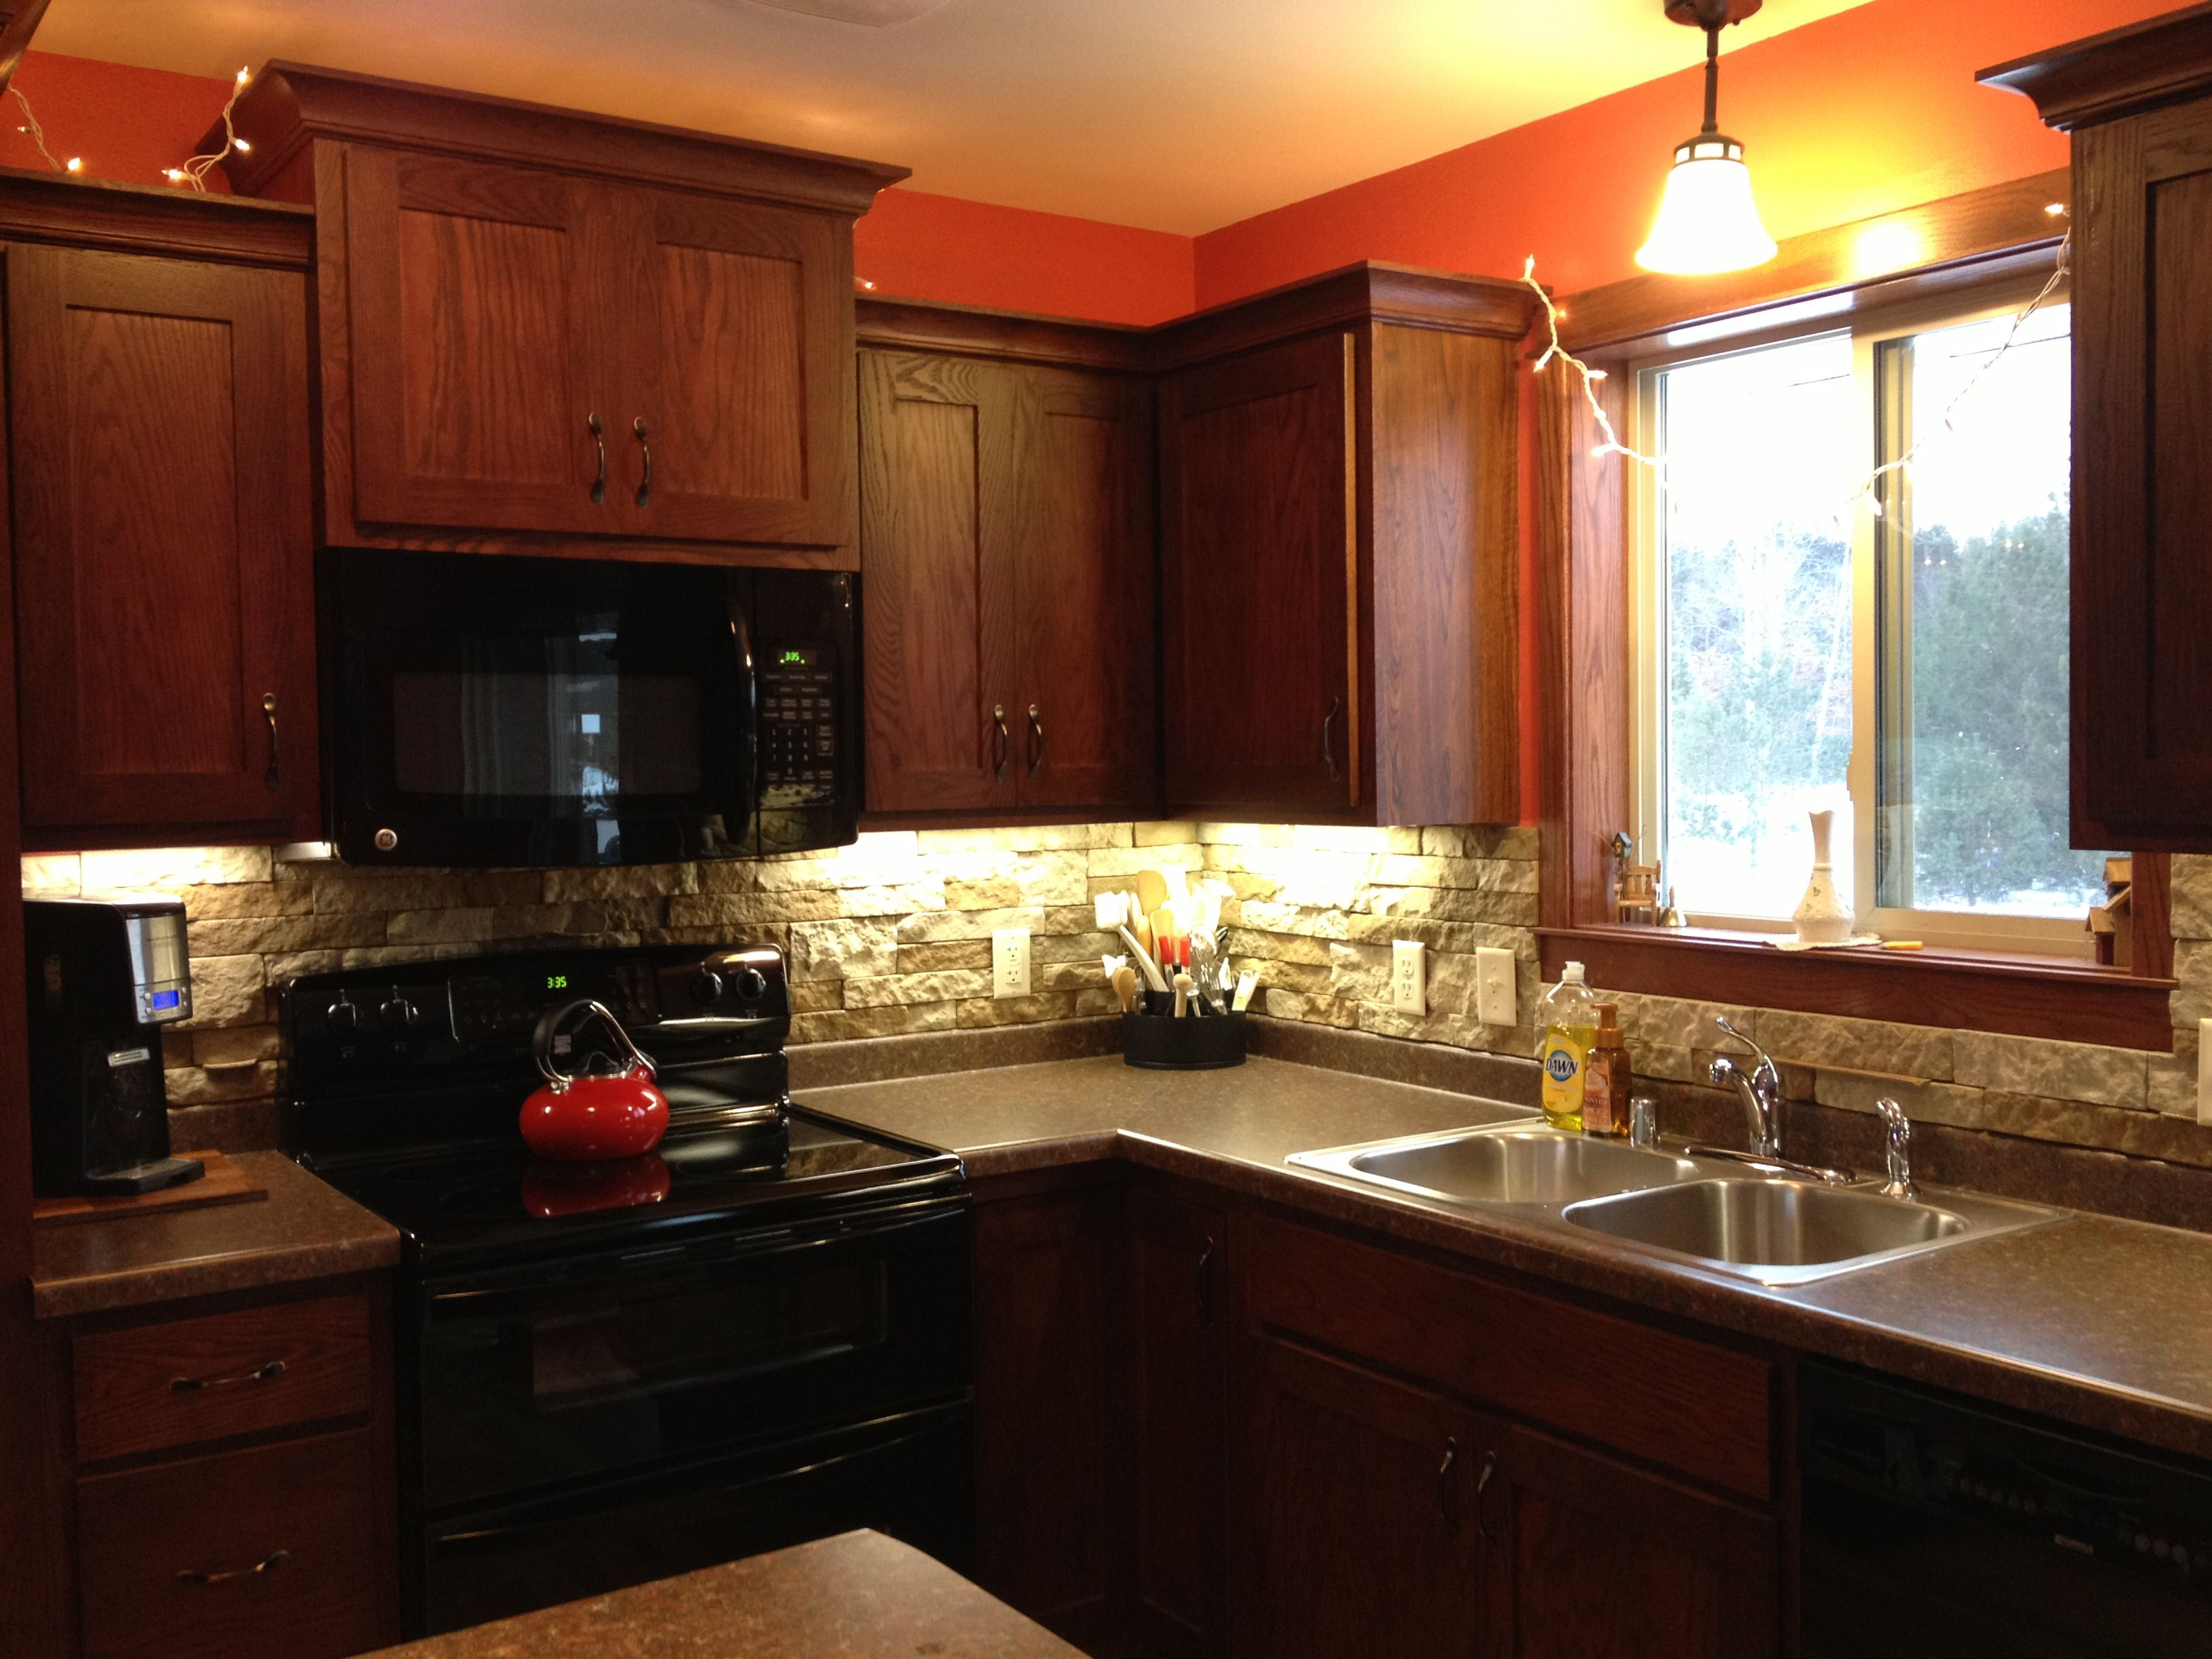 Our kitchen backsplash...done with airstone from Lowe's